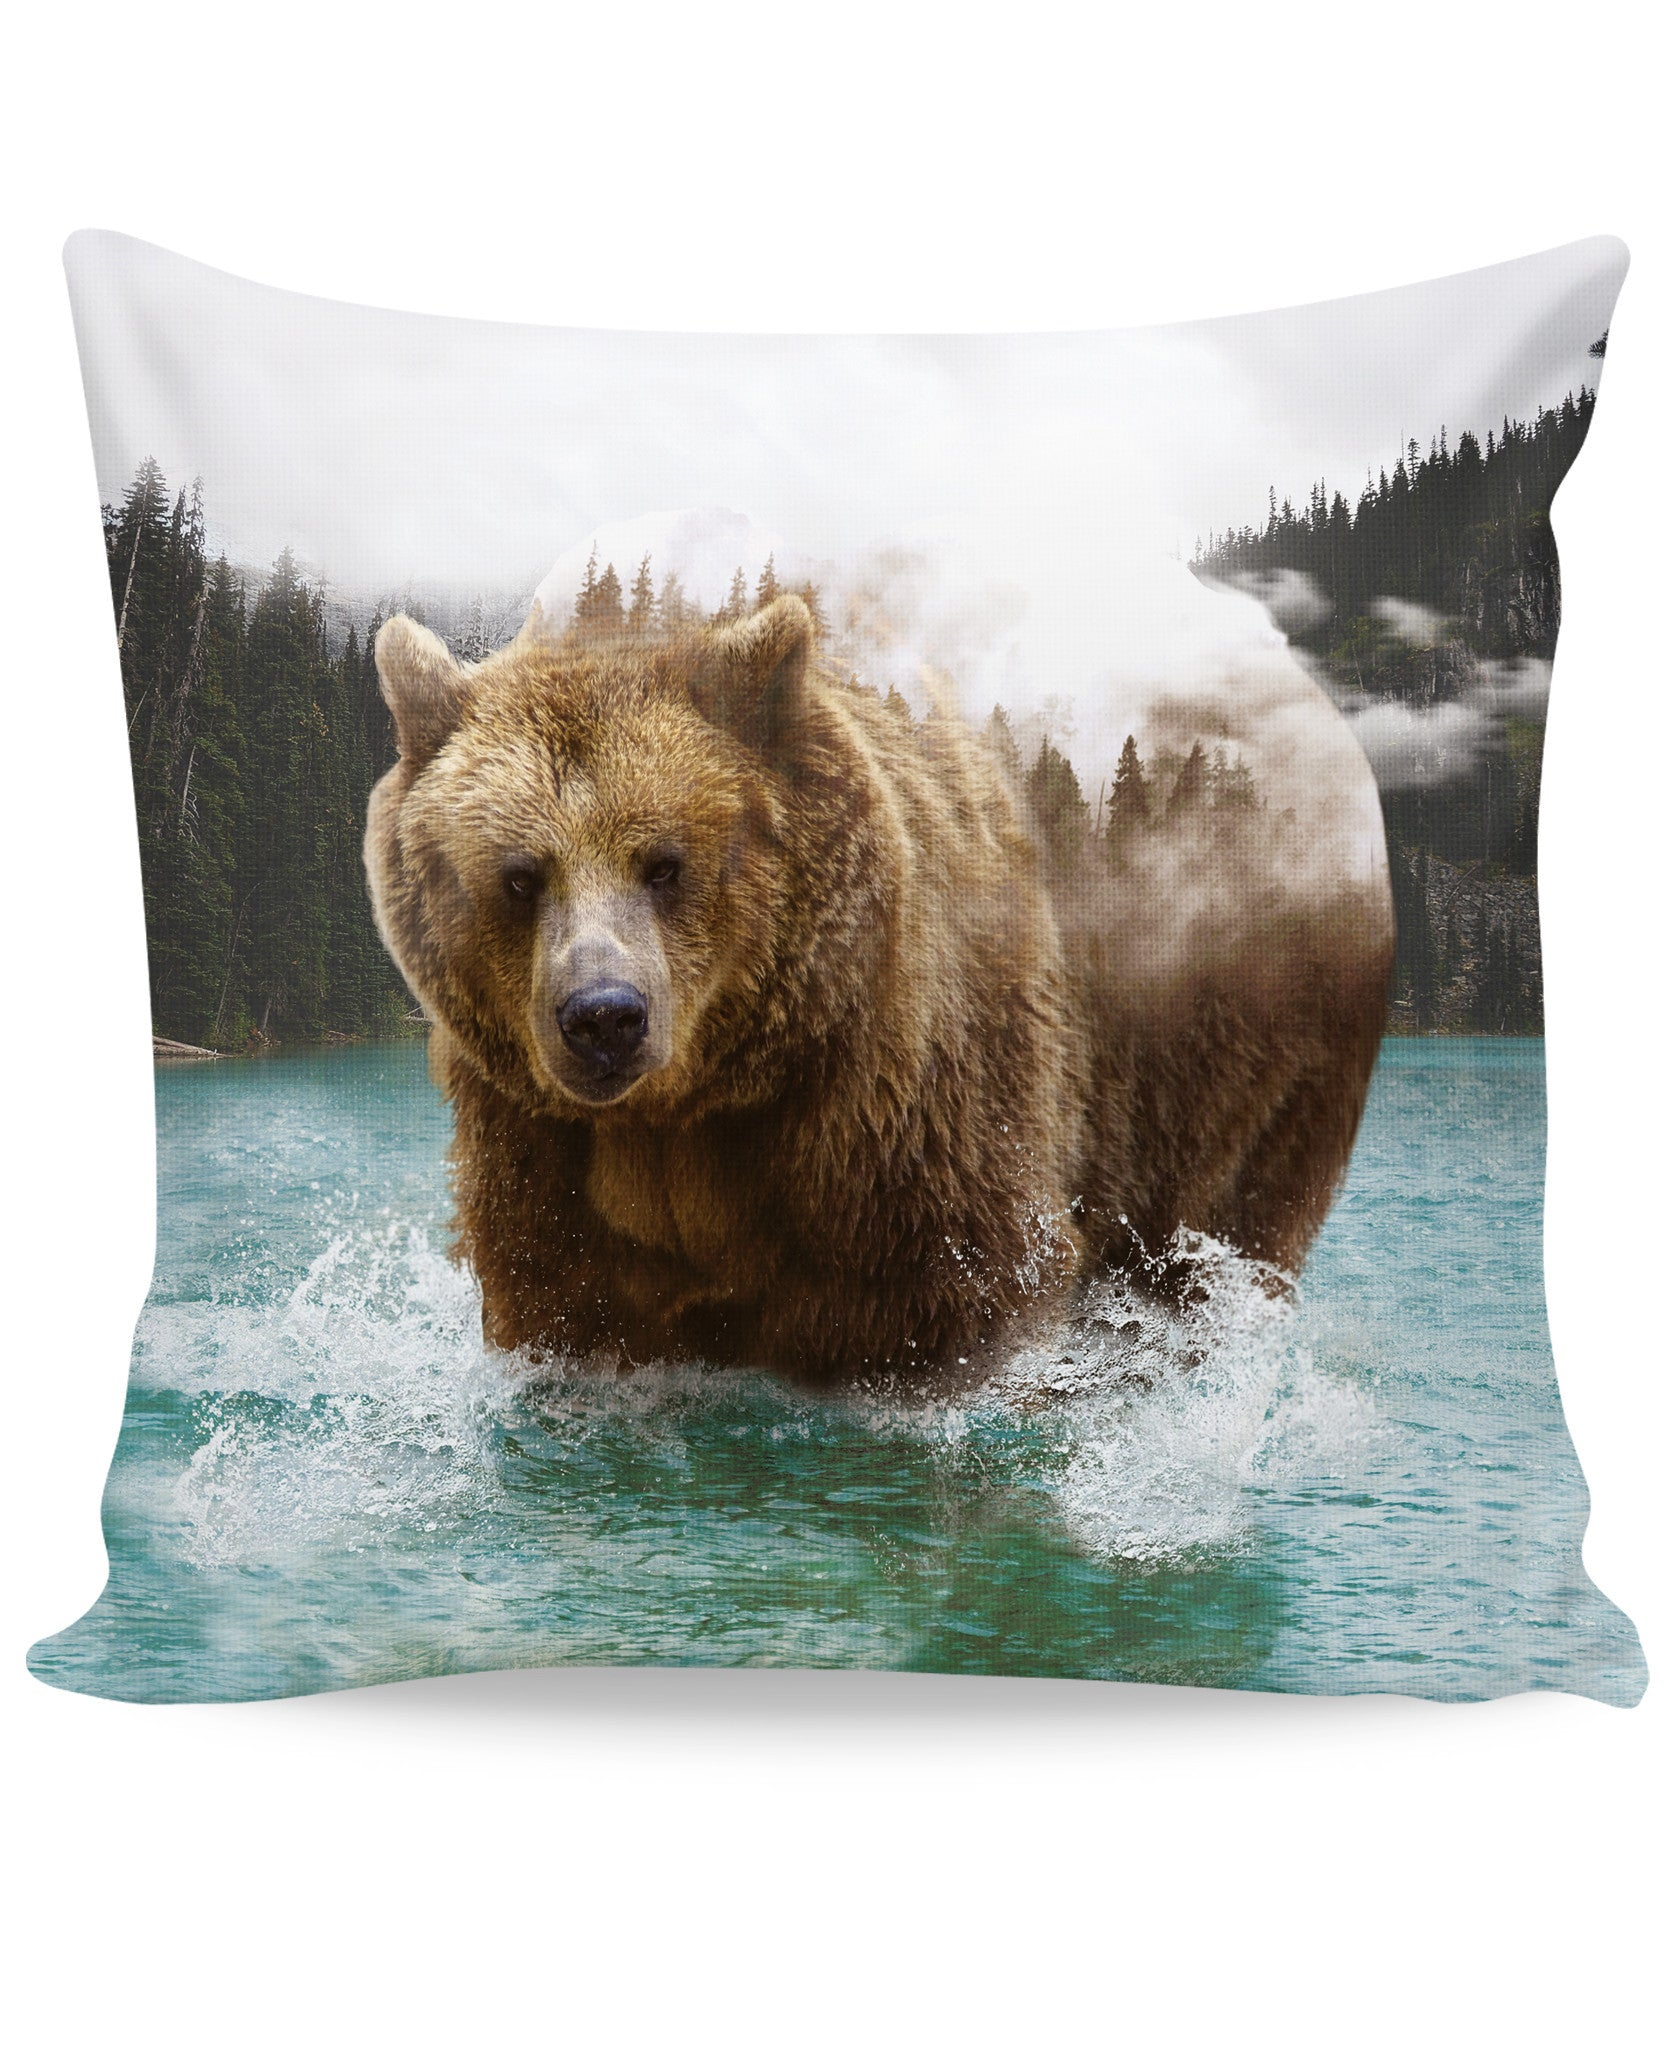 Bear Mountain Couch Pillow - TShirtsRUS.co